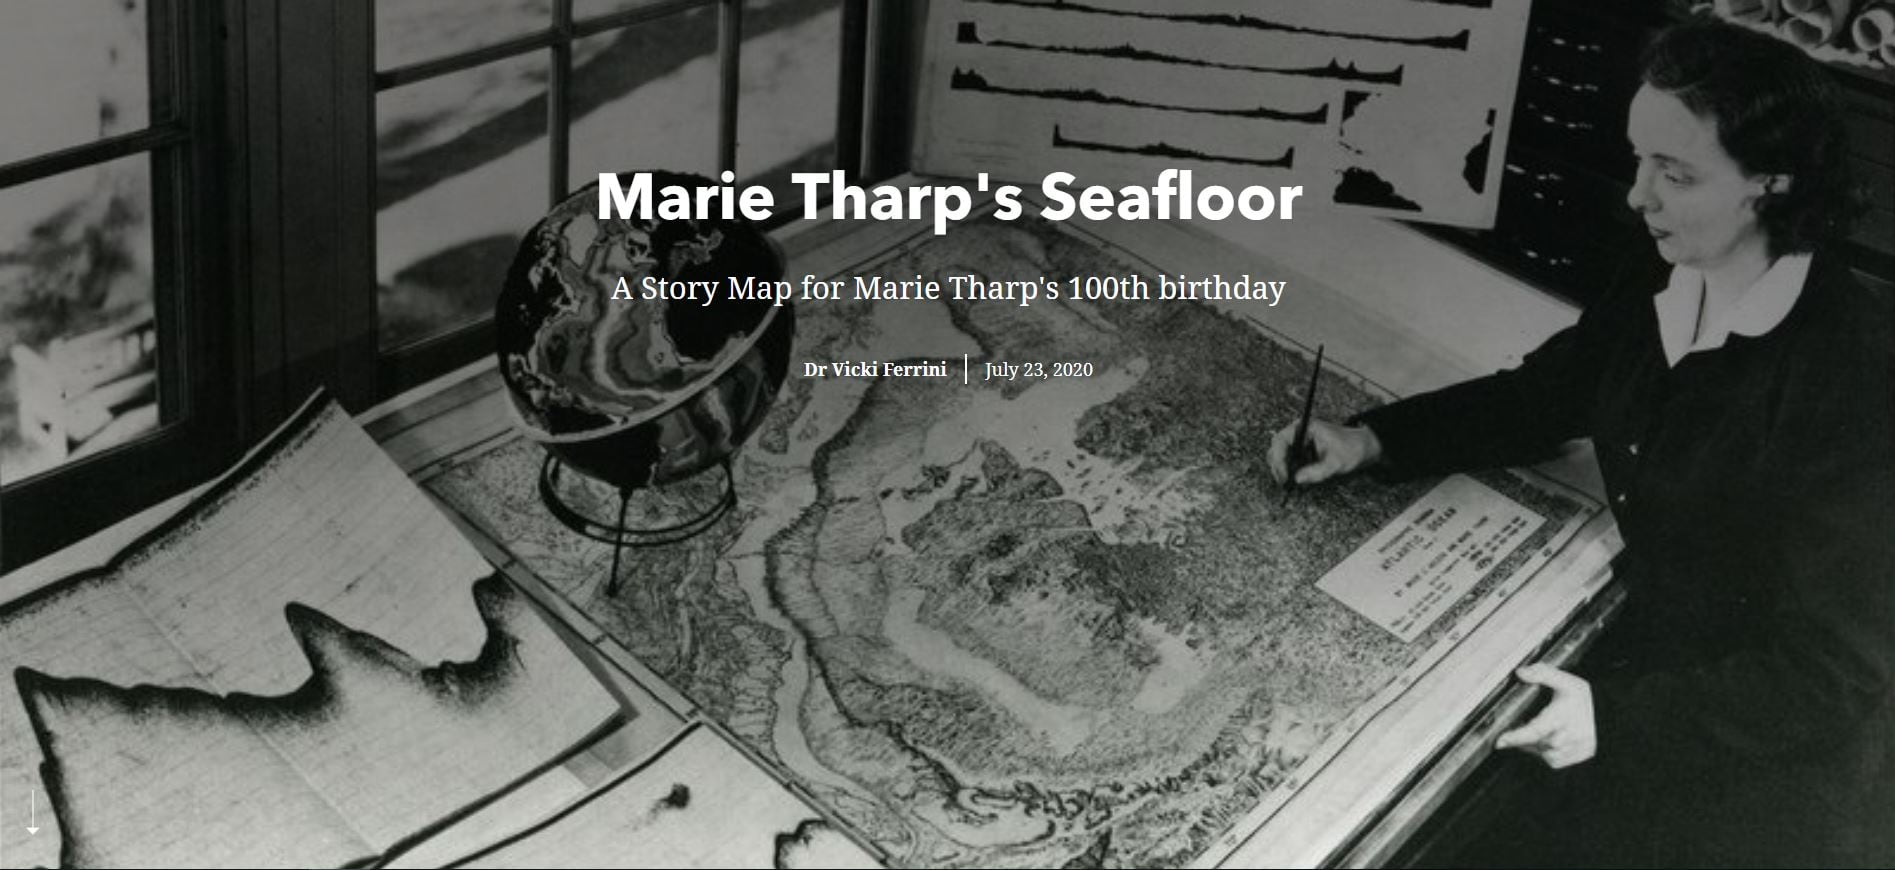 """Cover of the """"Marie Tharpe's Seafloor"""" story"""